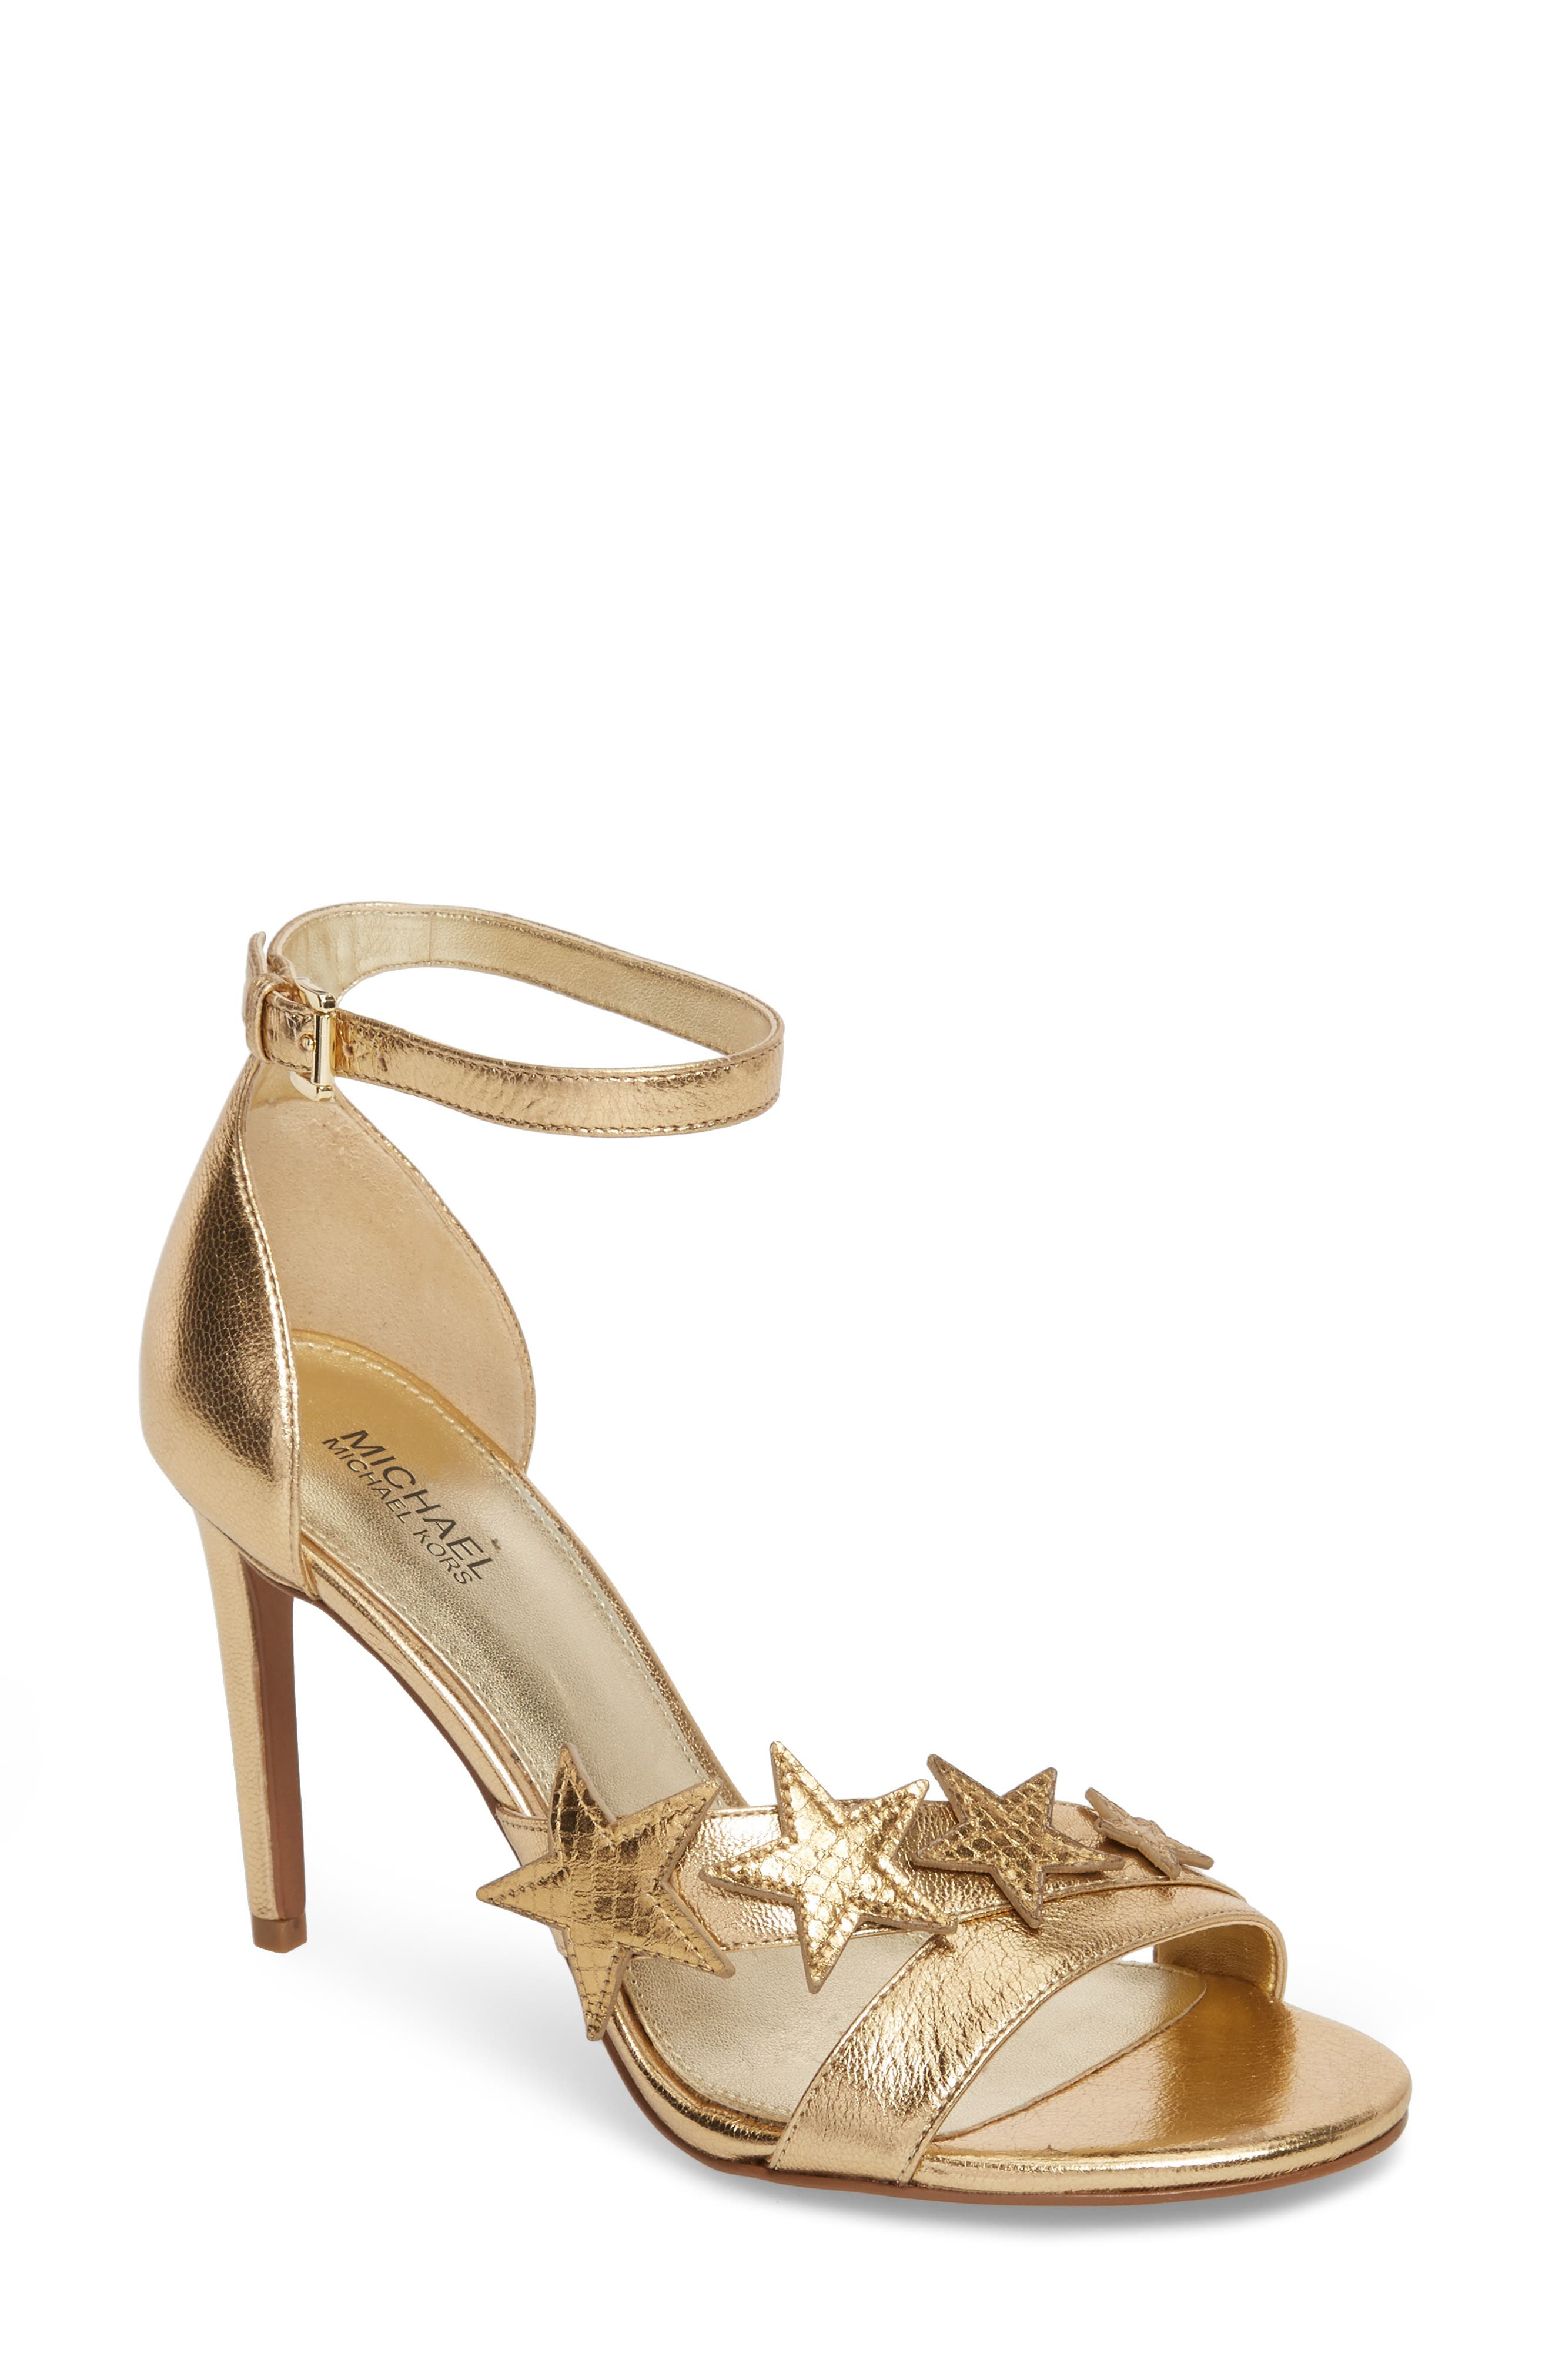 Lexie Sandal,                         Main,                         color, Pale Gold Nappa Leather